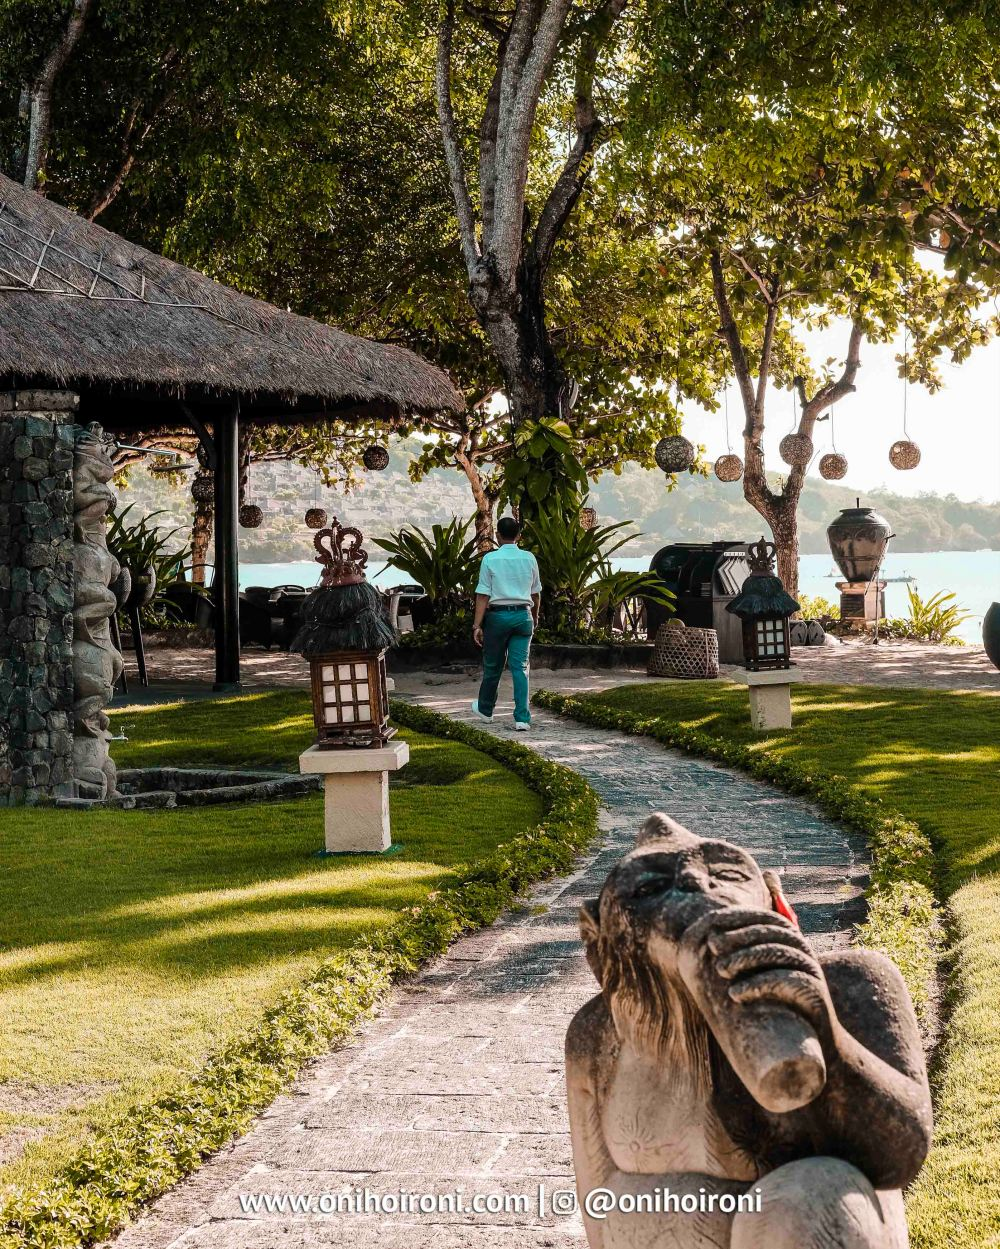 15 Sunset beach bar and grill intercontinental bali resort oni hoironi restaurant di jimbaran copy